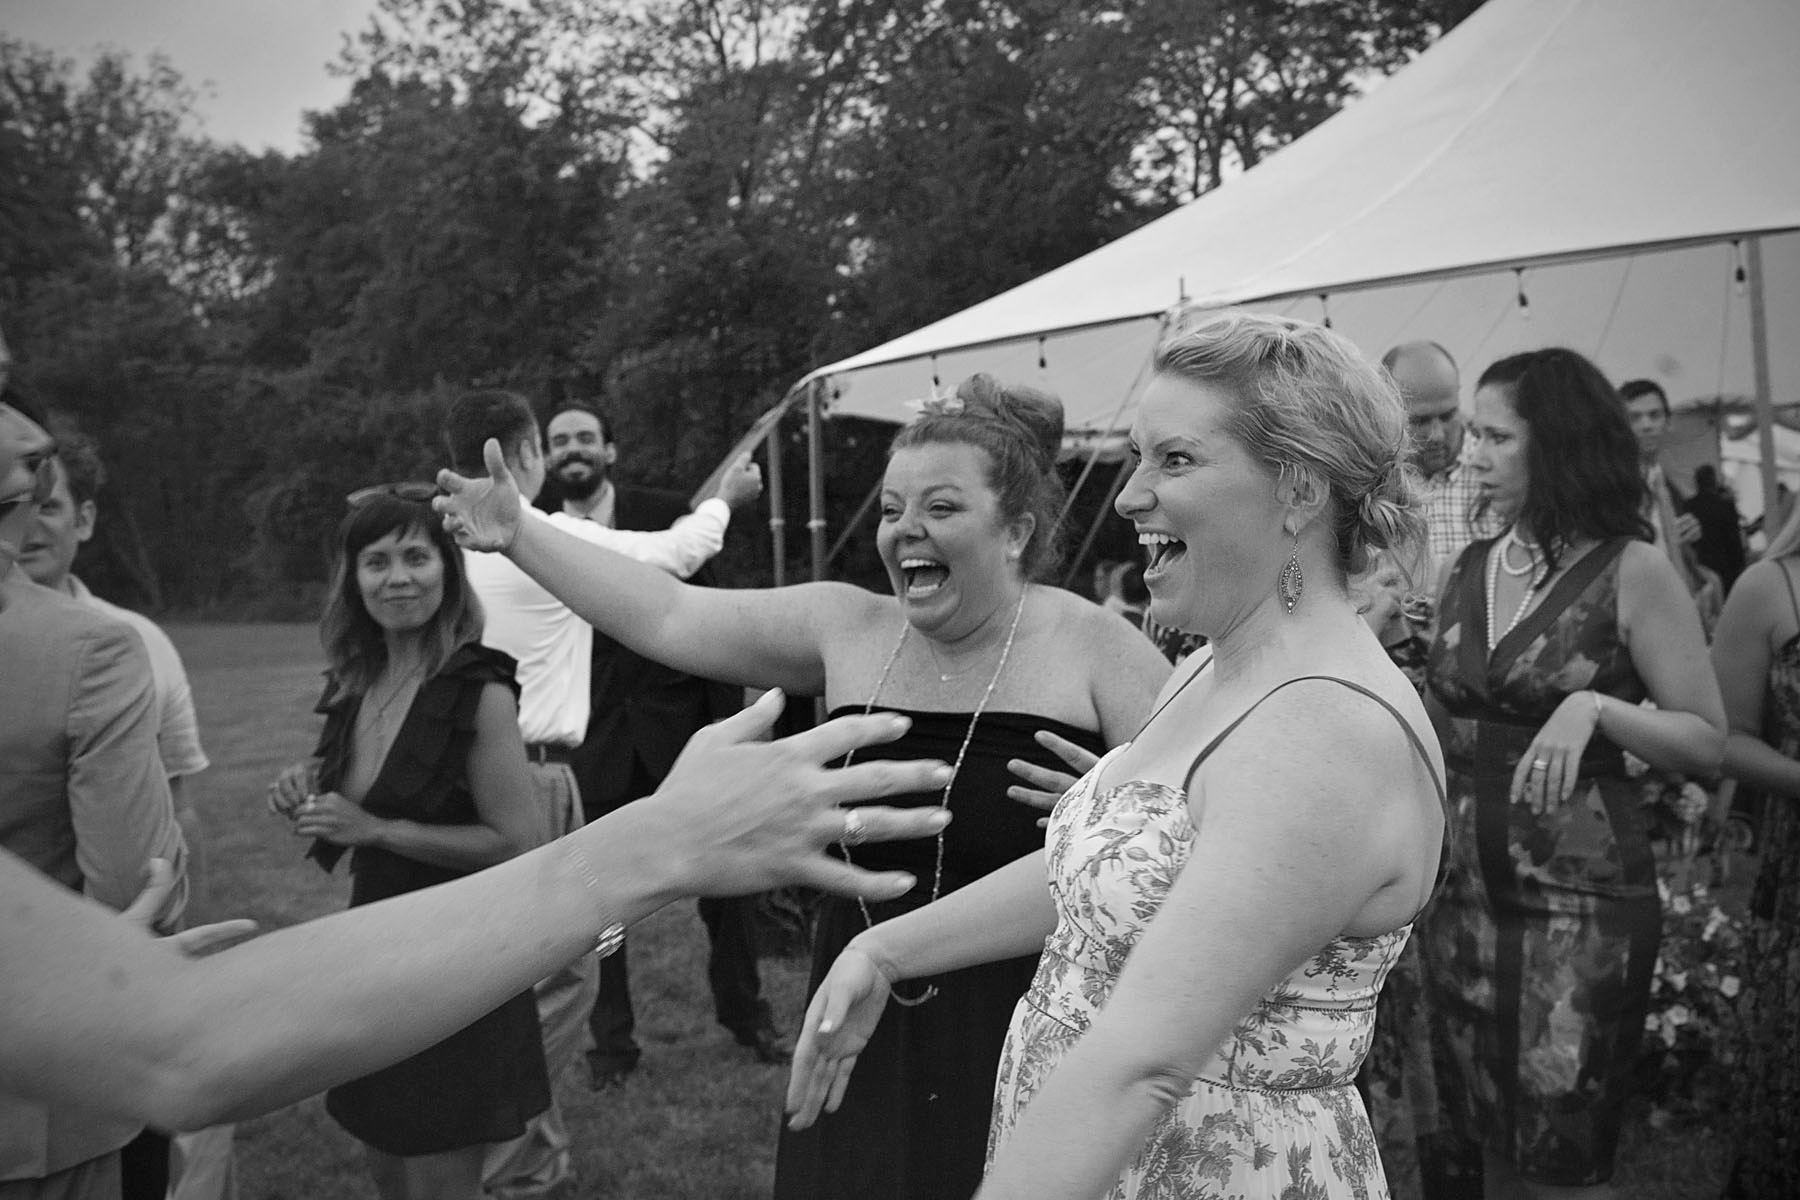 Friends greet the bride on her wedding day with enthusiasm